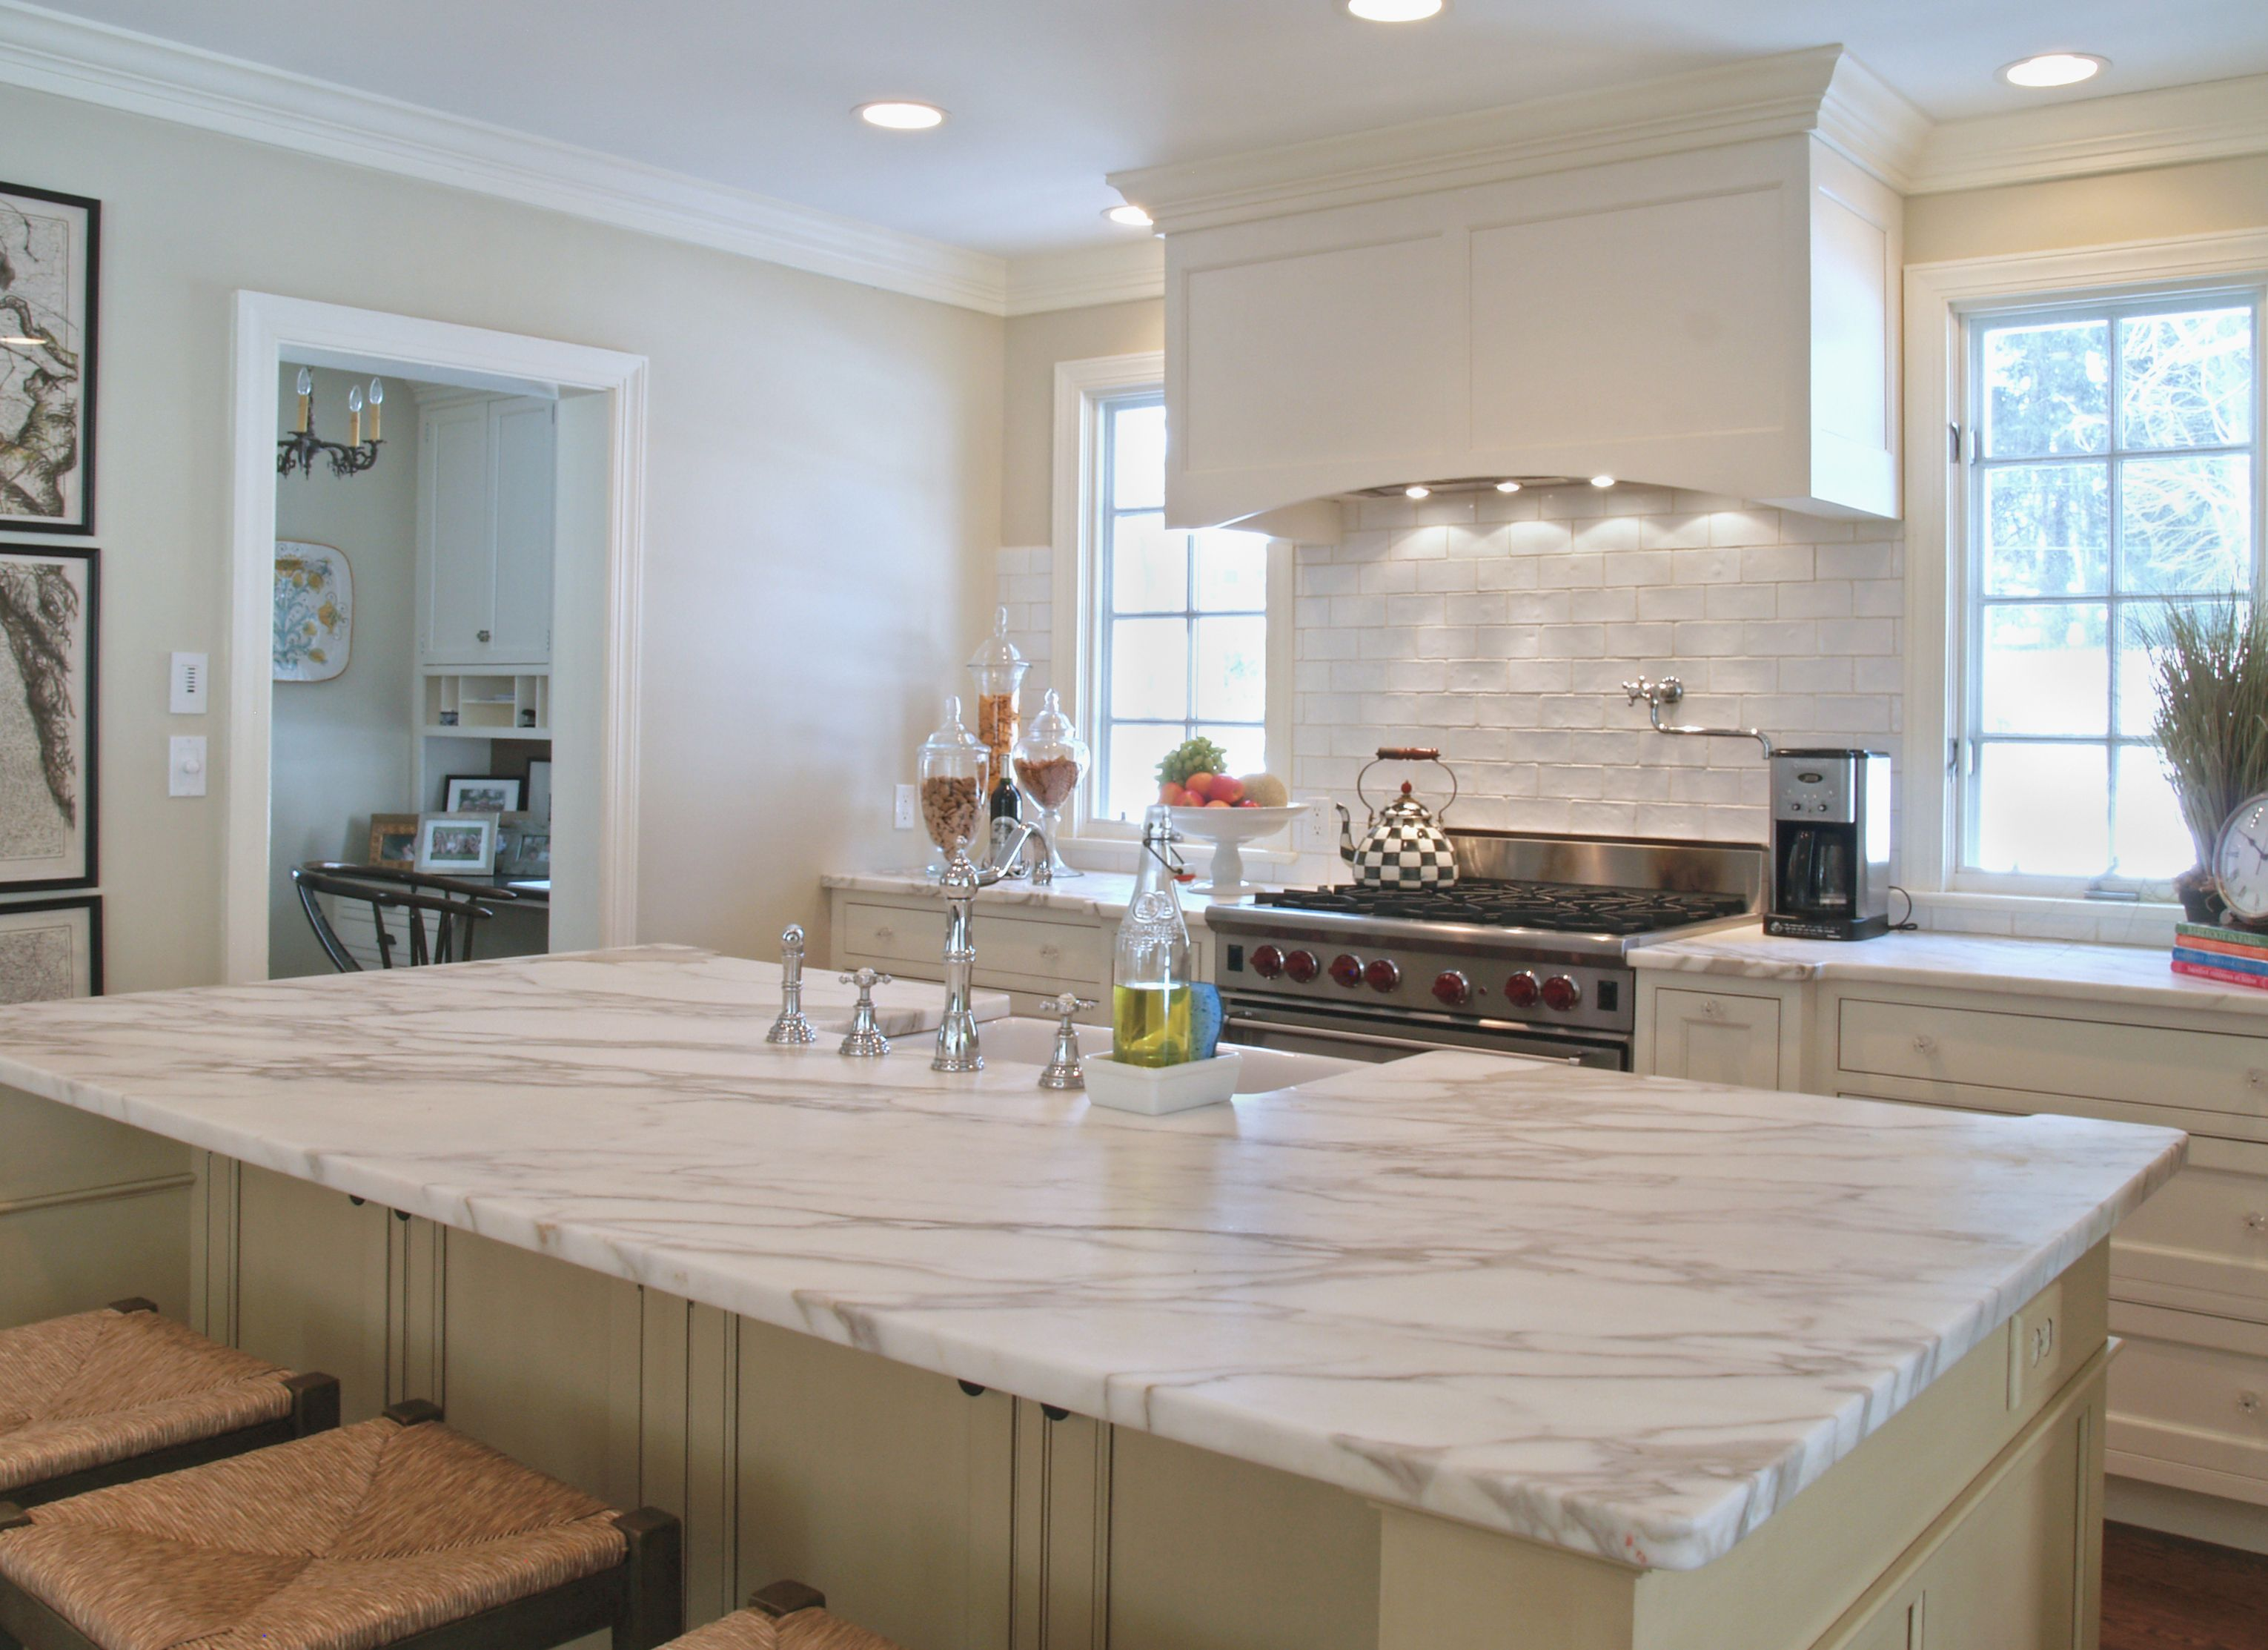 backsplash countertop countertops tile with that look cost white carrara granite newfangled subway splendid kitchen marble carrera like